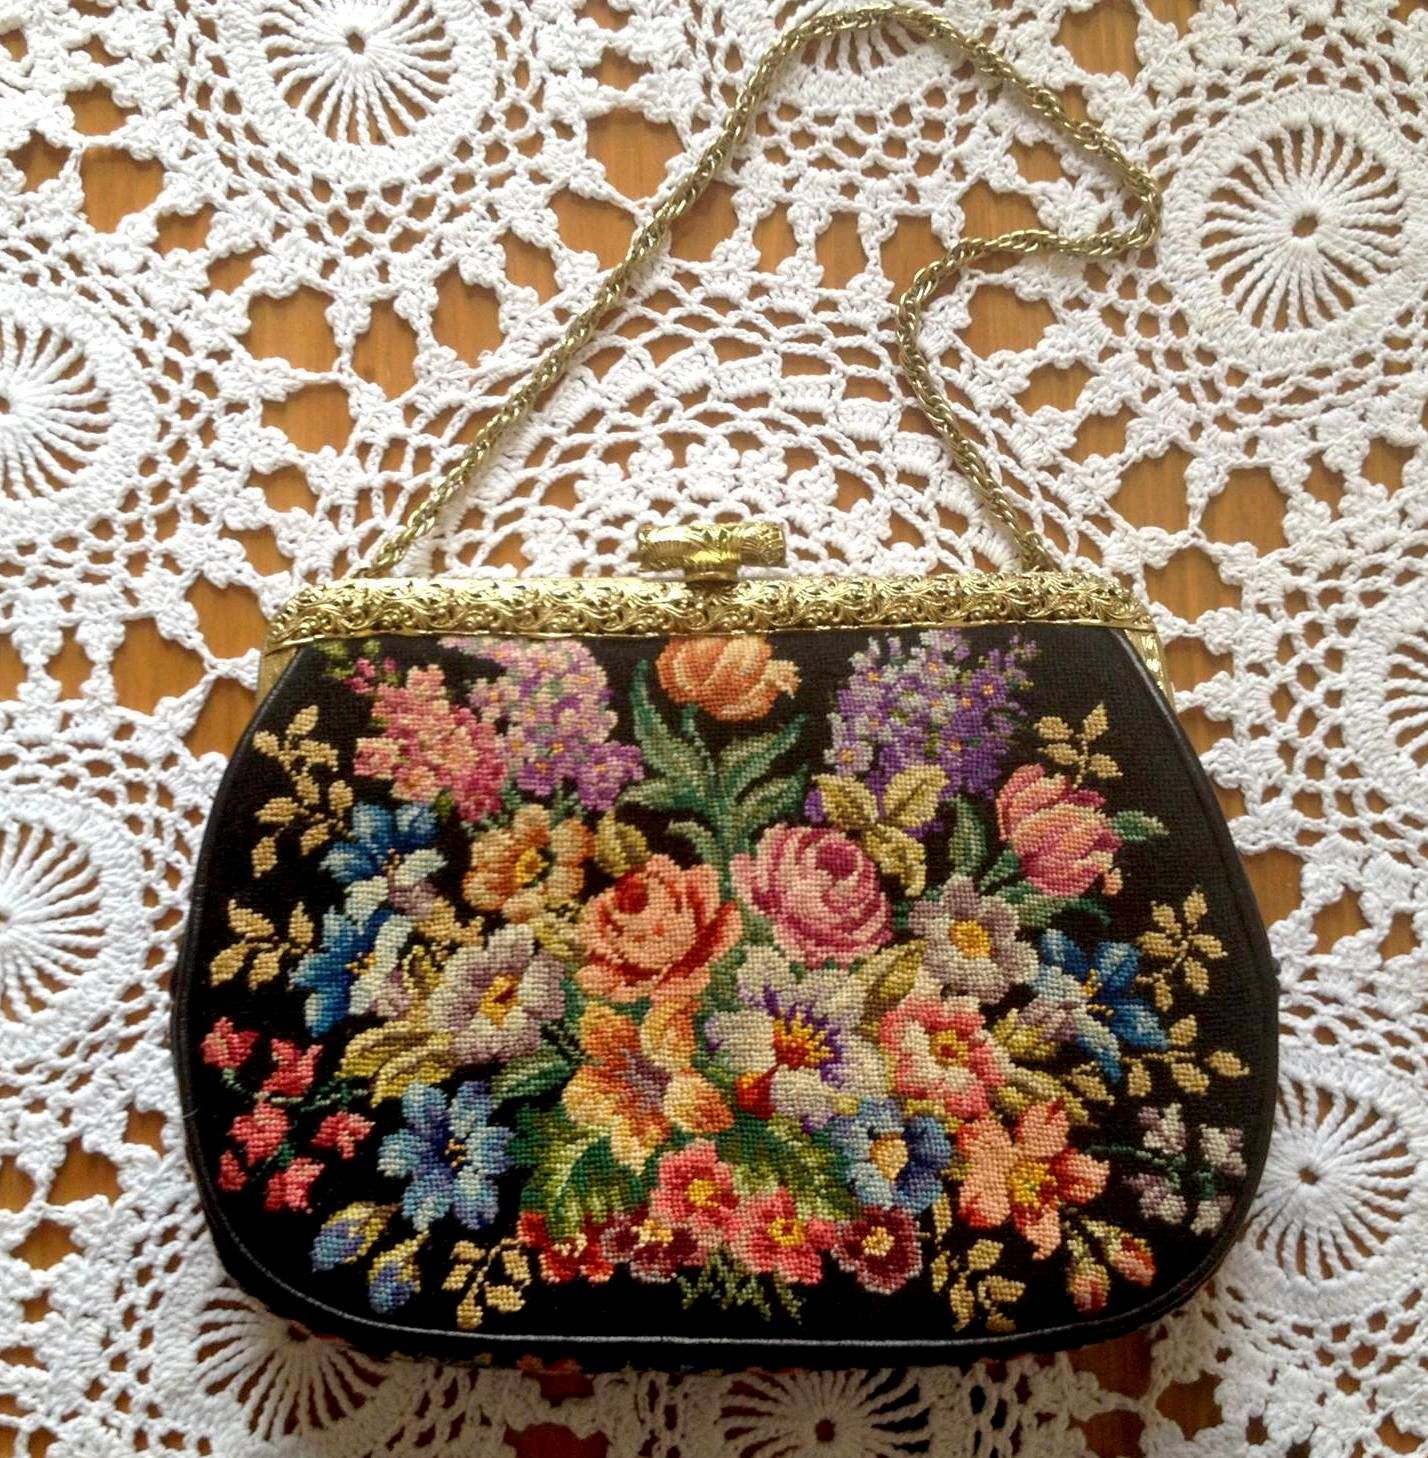 Embroidered vintage pursemy embroidery collection embroidery